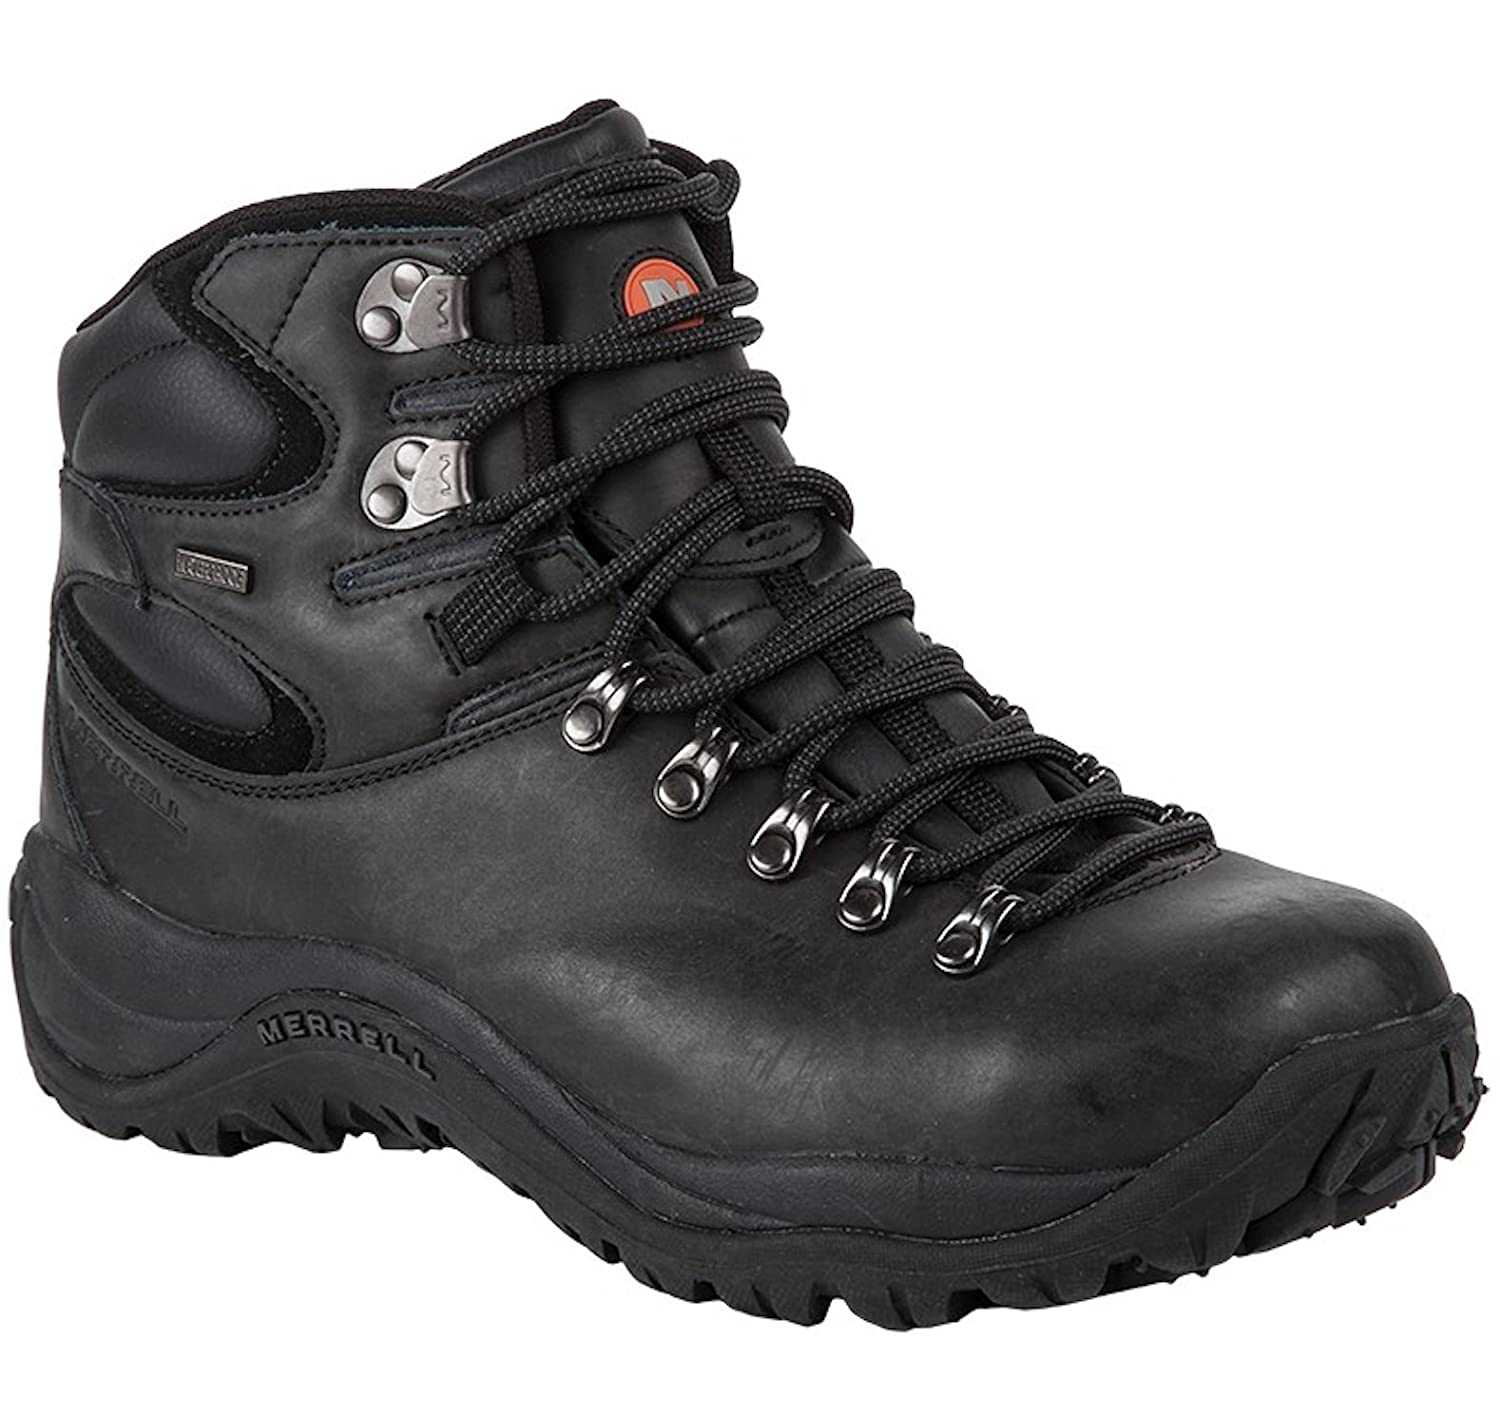 30ca077e6ba Merrell Mens Reflex II Mid Leather Waterproof Boots (47, Black ...